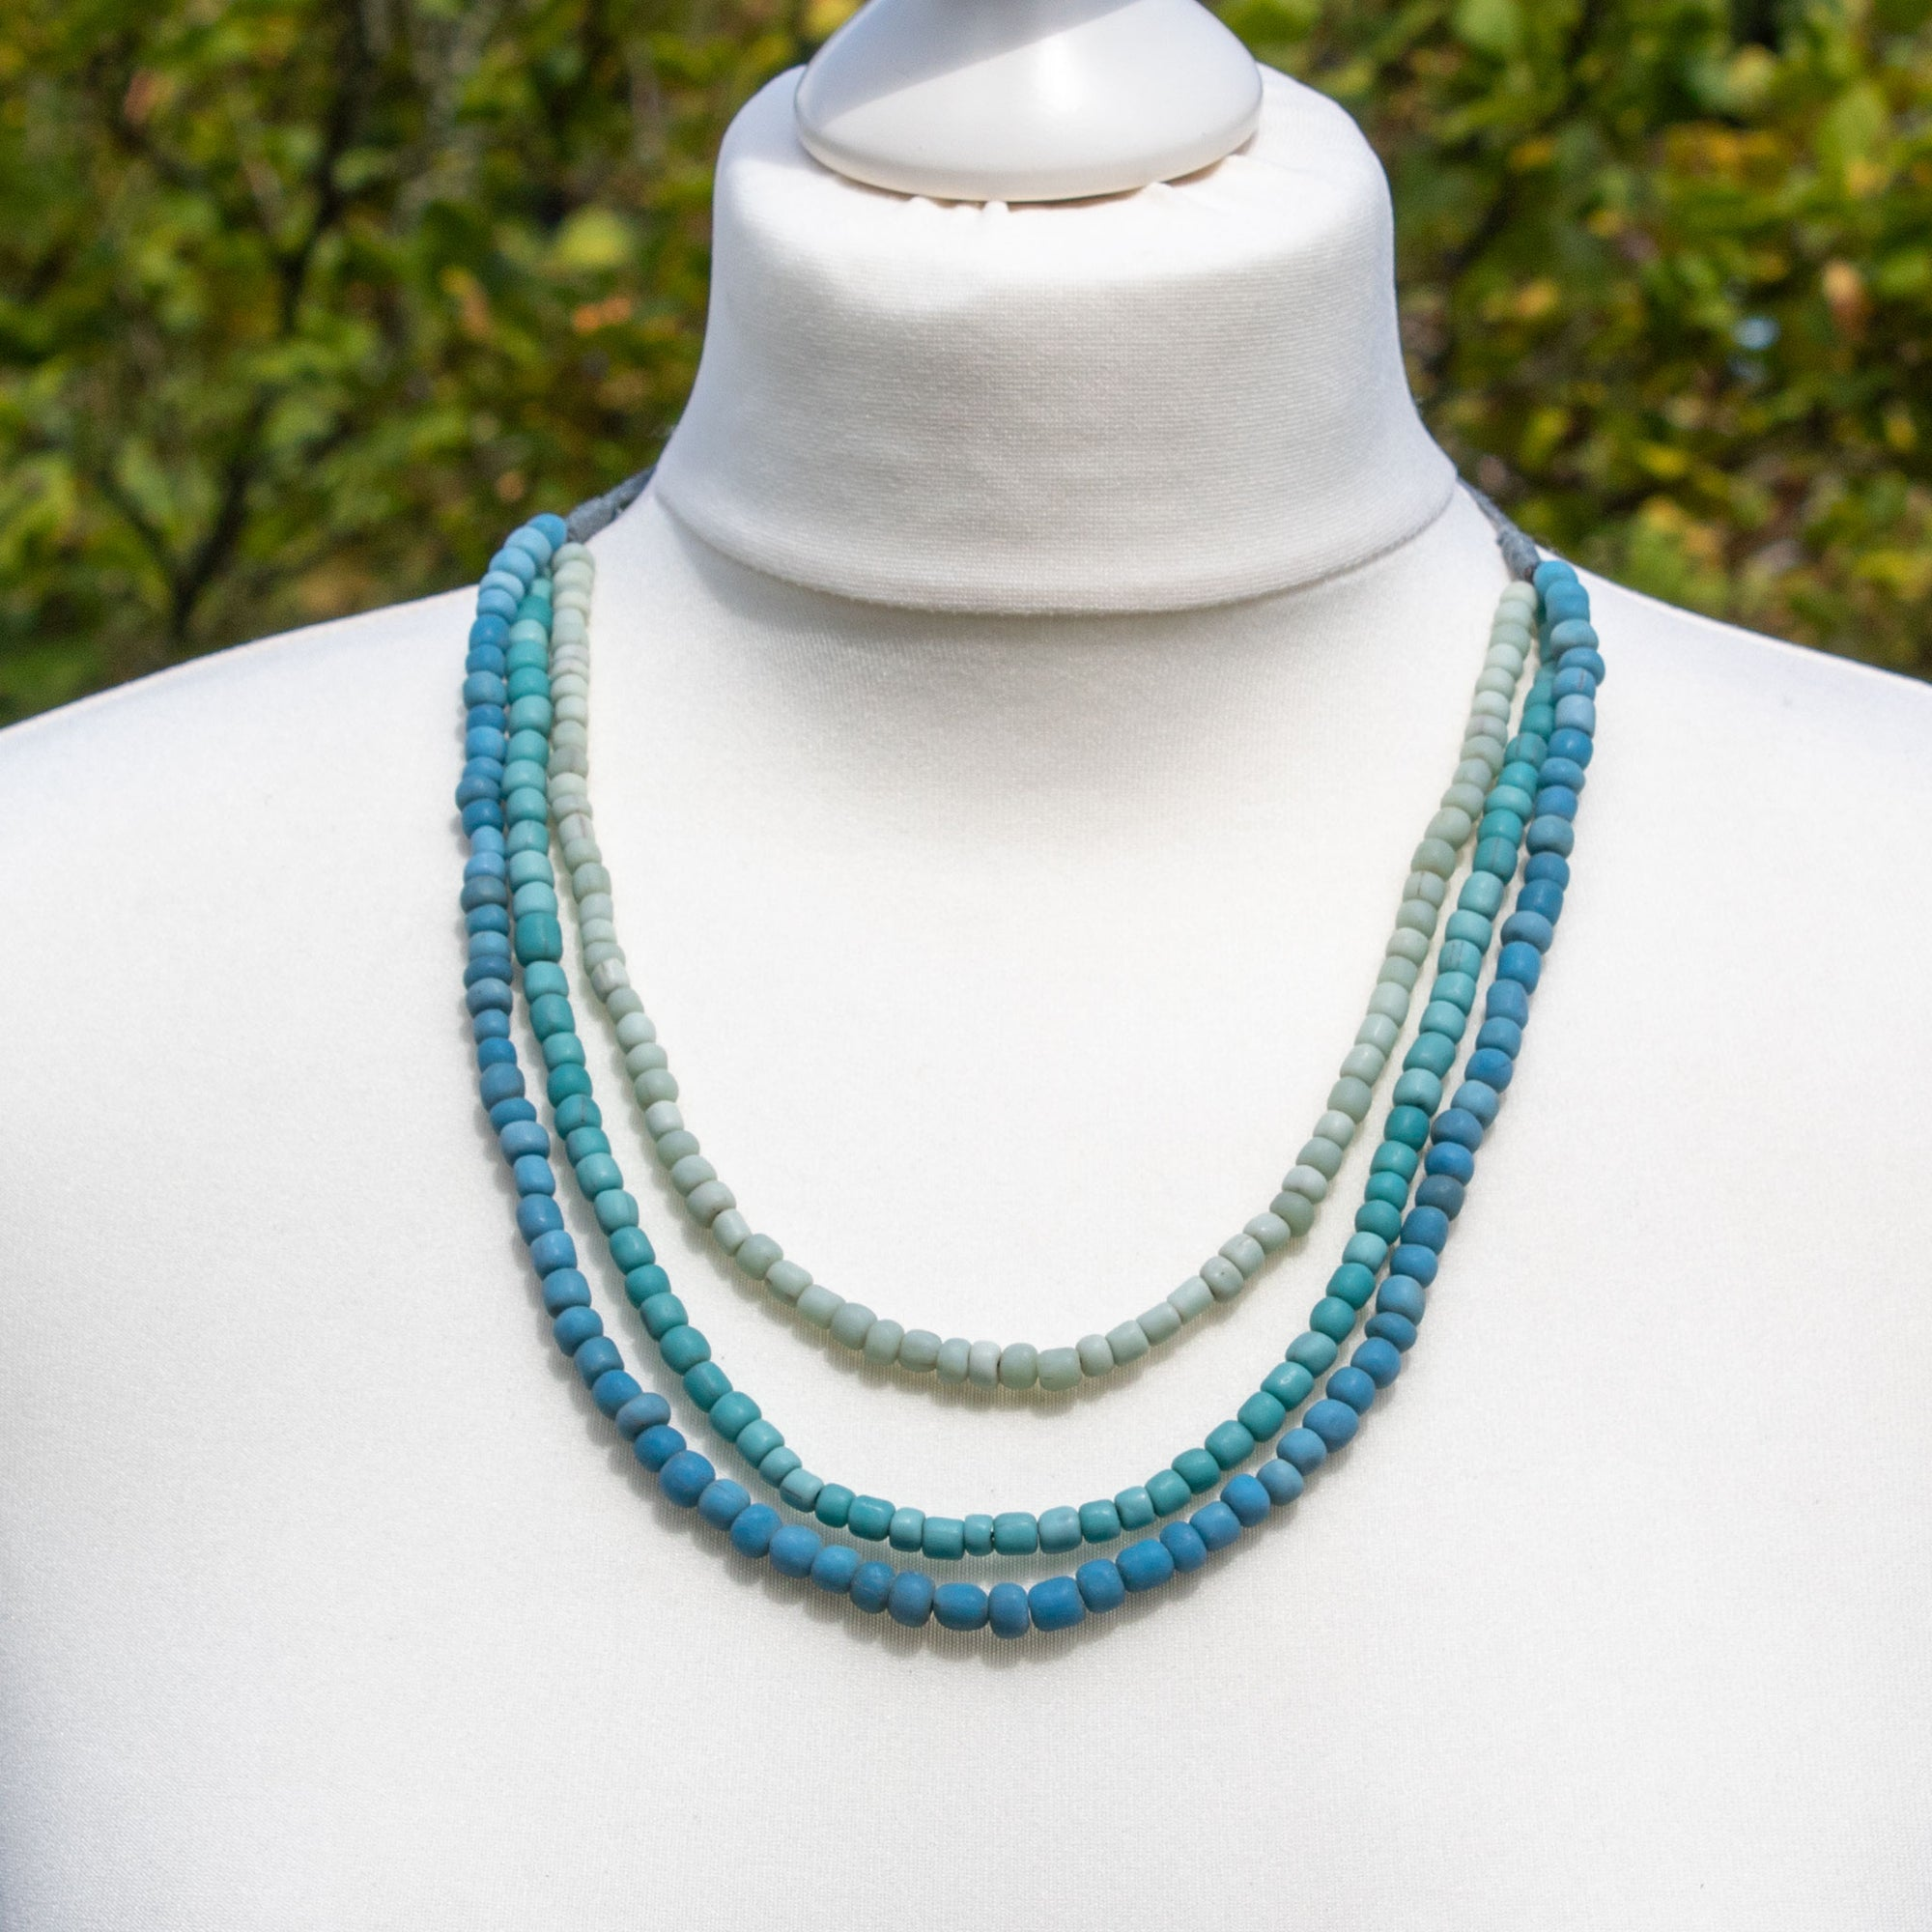 Pale Blue & Turquoise Glass Bead Necklace | Necklace - The Naughty Shrew